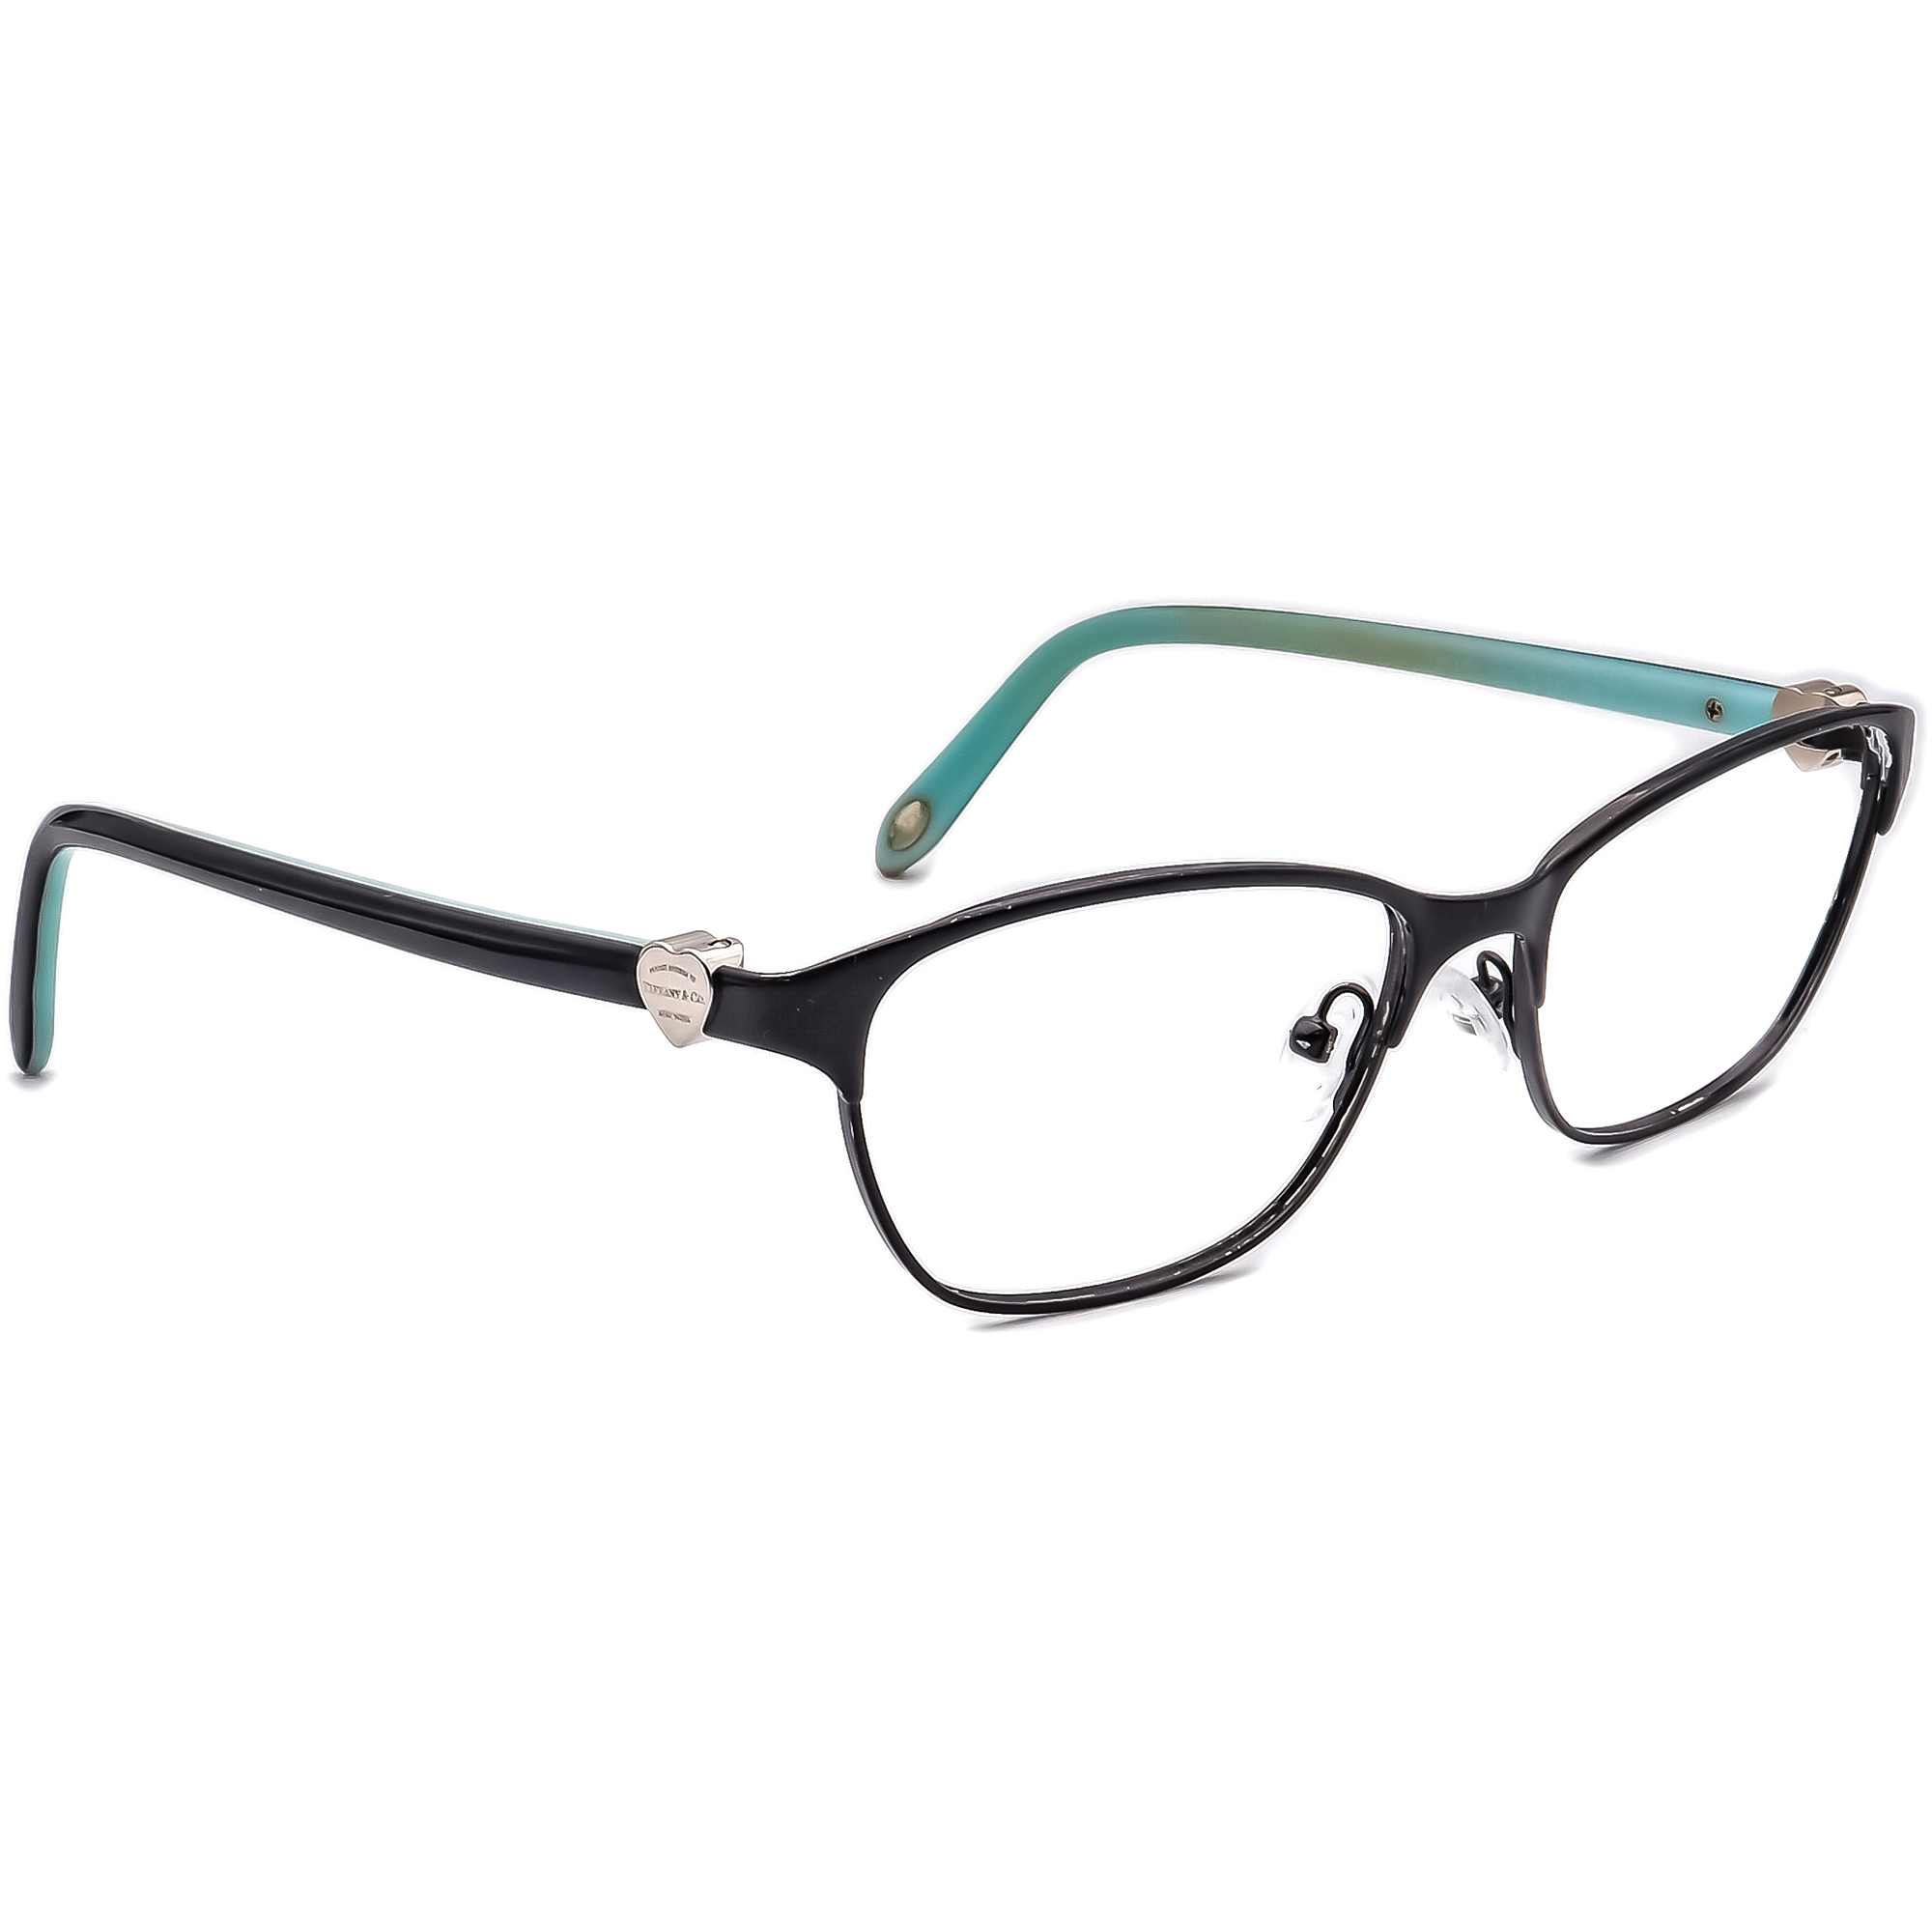 Tiffany & Co. TF 1072 6007 Eyeglasses